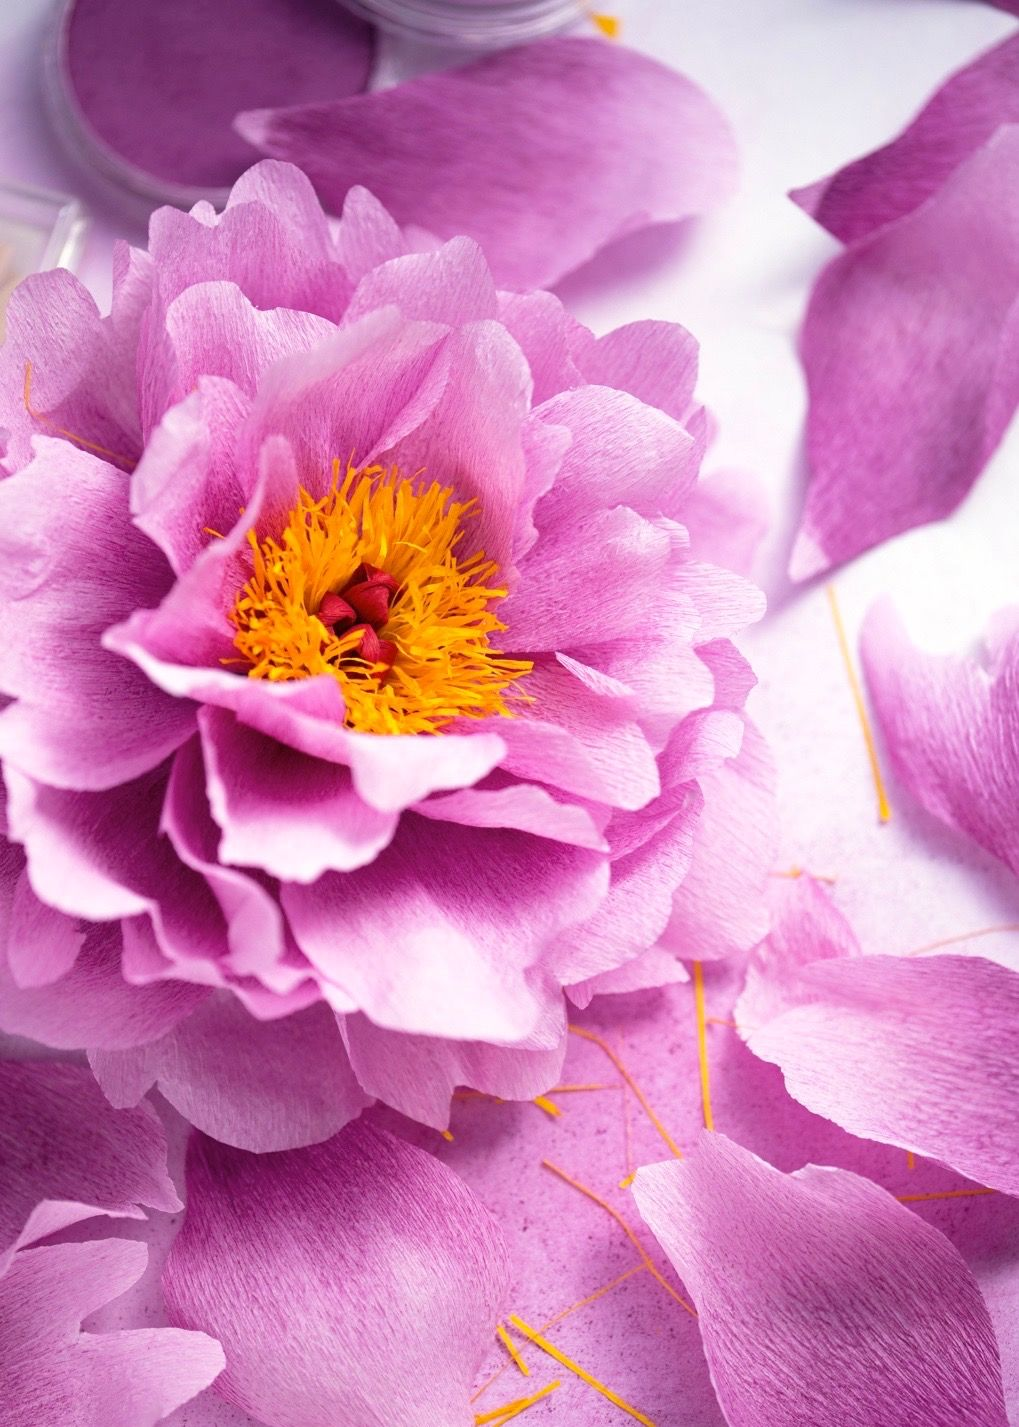 Crepe Paper Peony Handmade And Photographed By Papetal Author Of